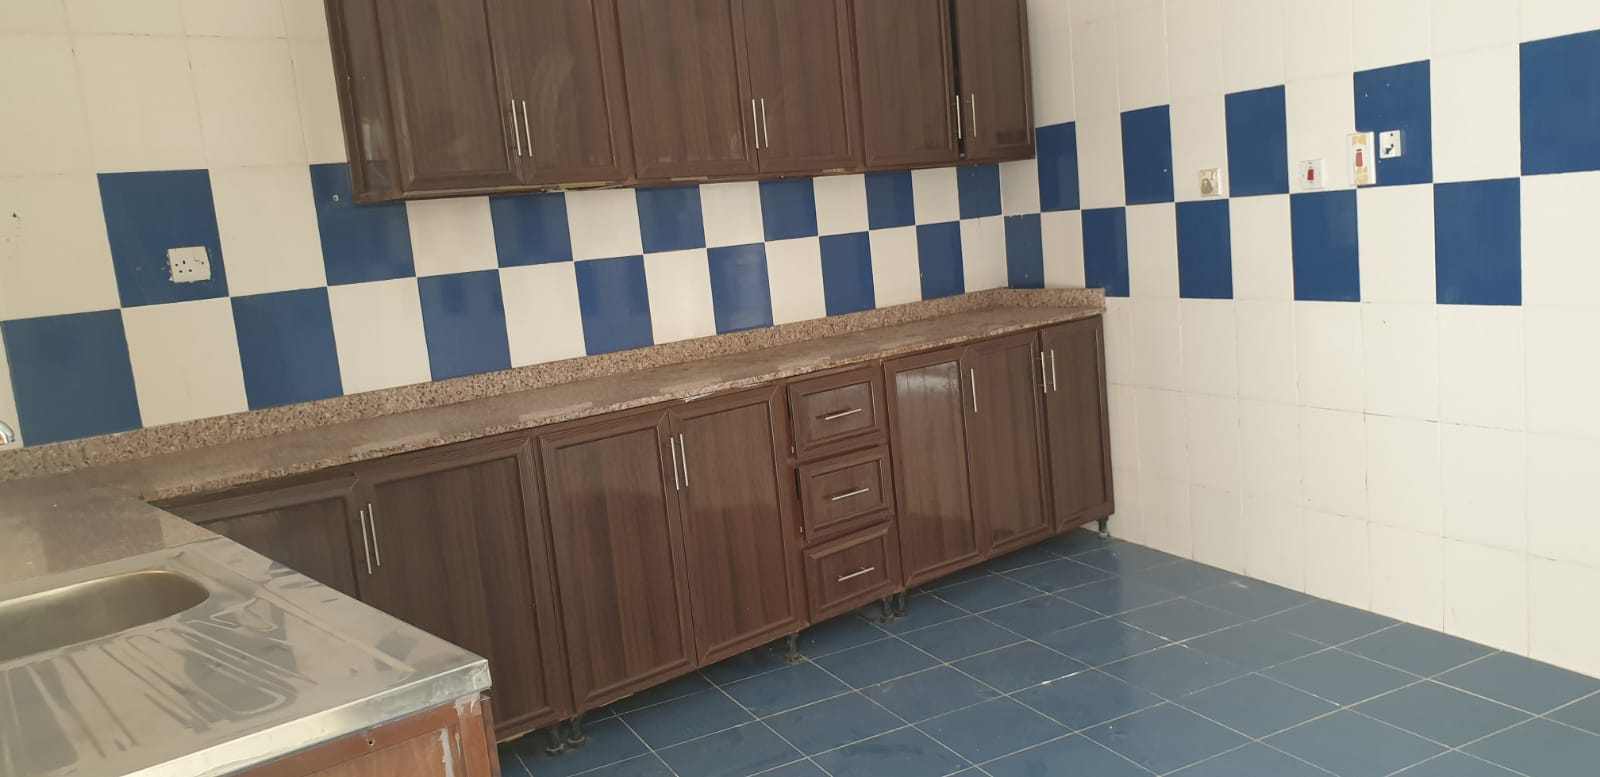 7 Bedroom Villa Available for Rent for staffs in Wukair Area